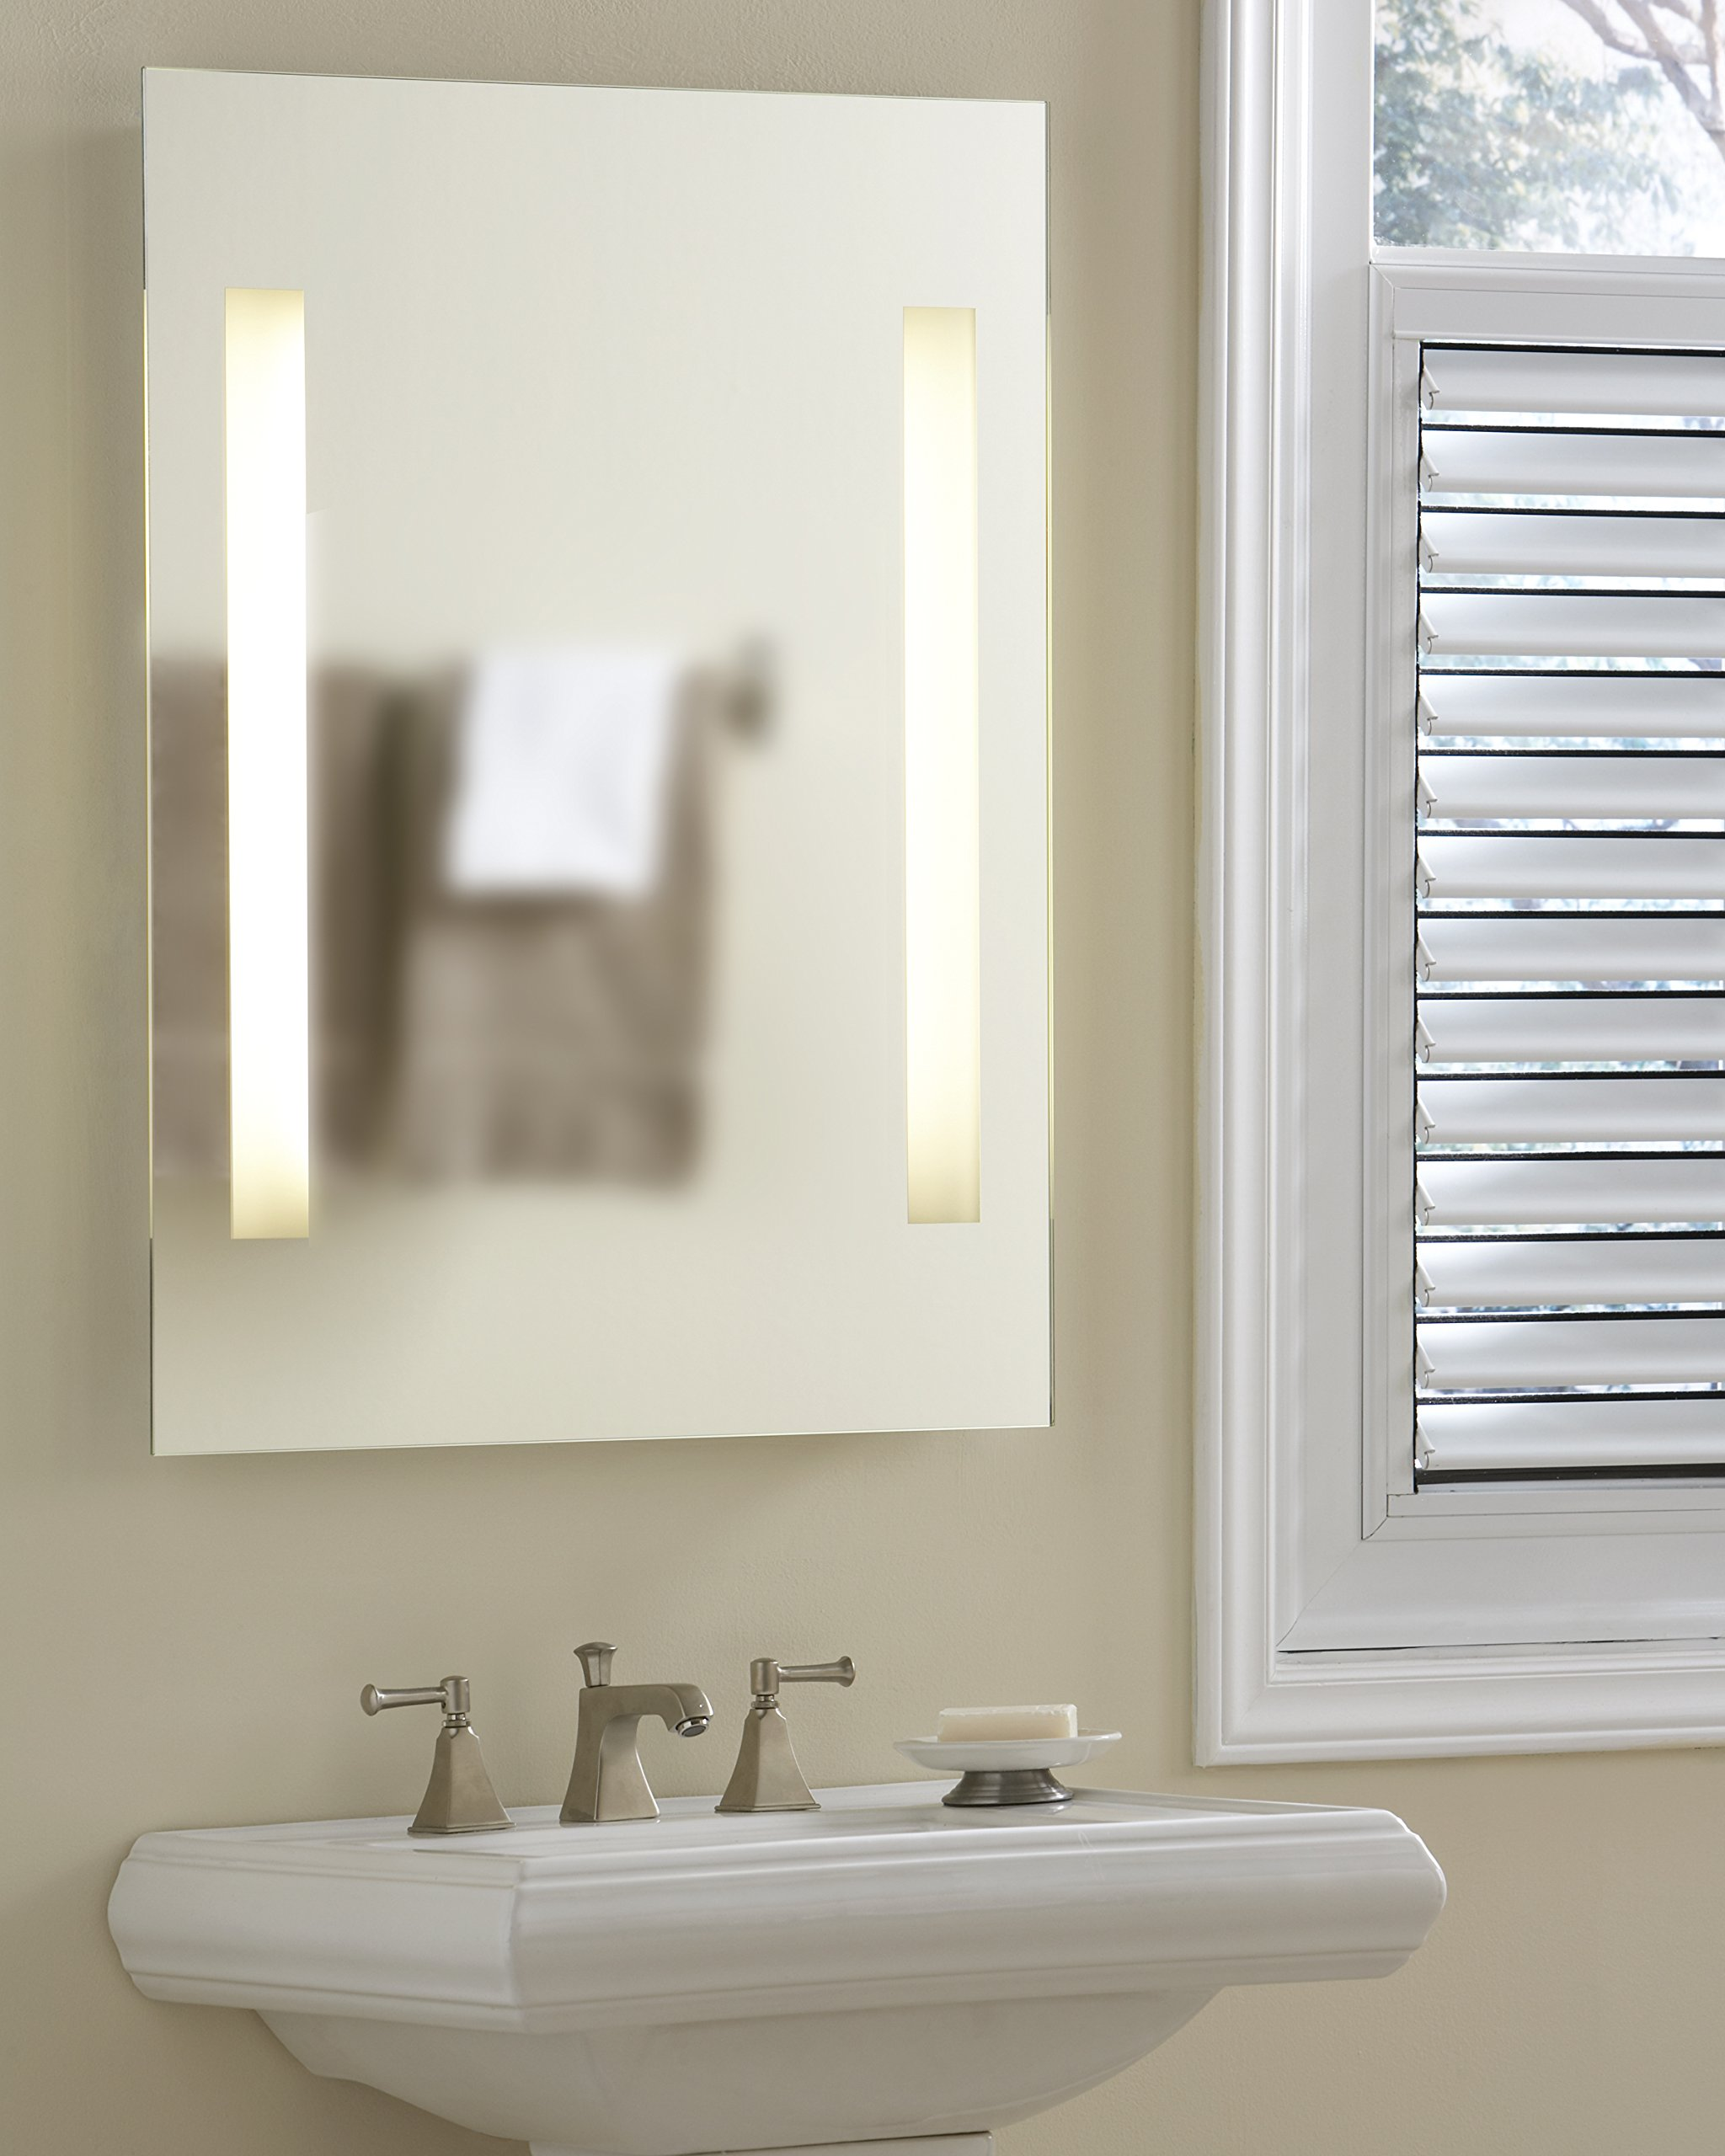 Meek Mirrors Frameless Backlit LED Lighted Mirror, 2 Strip Design with On/Off Switch (AMZL1011), 24'' W x 36'' L